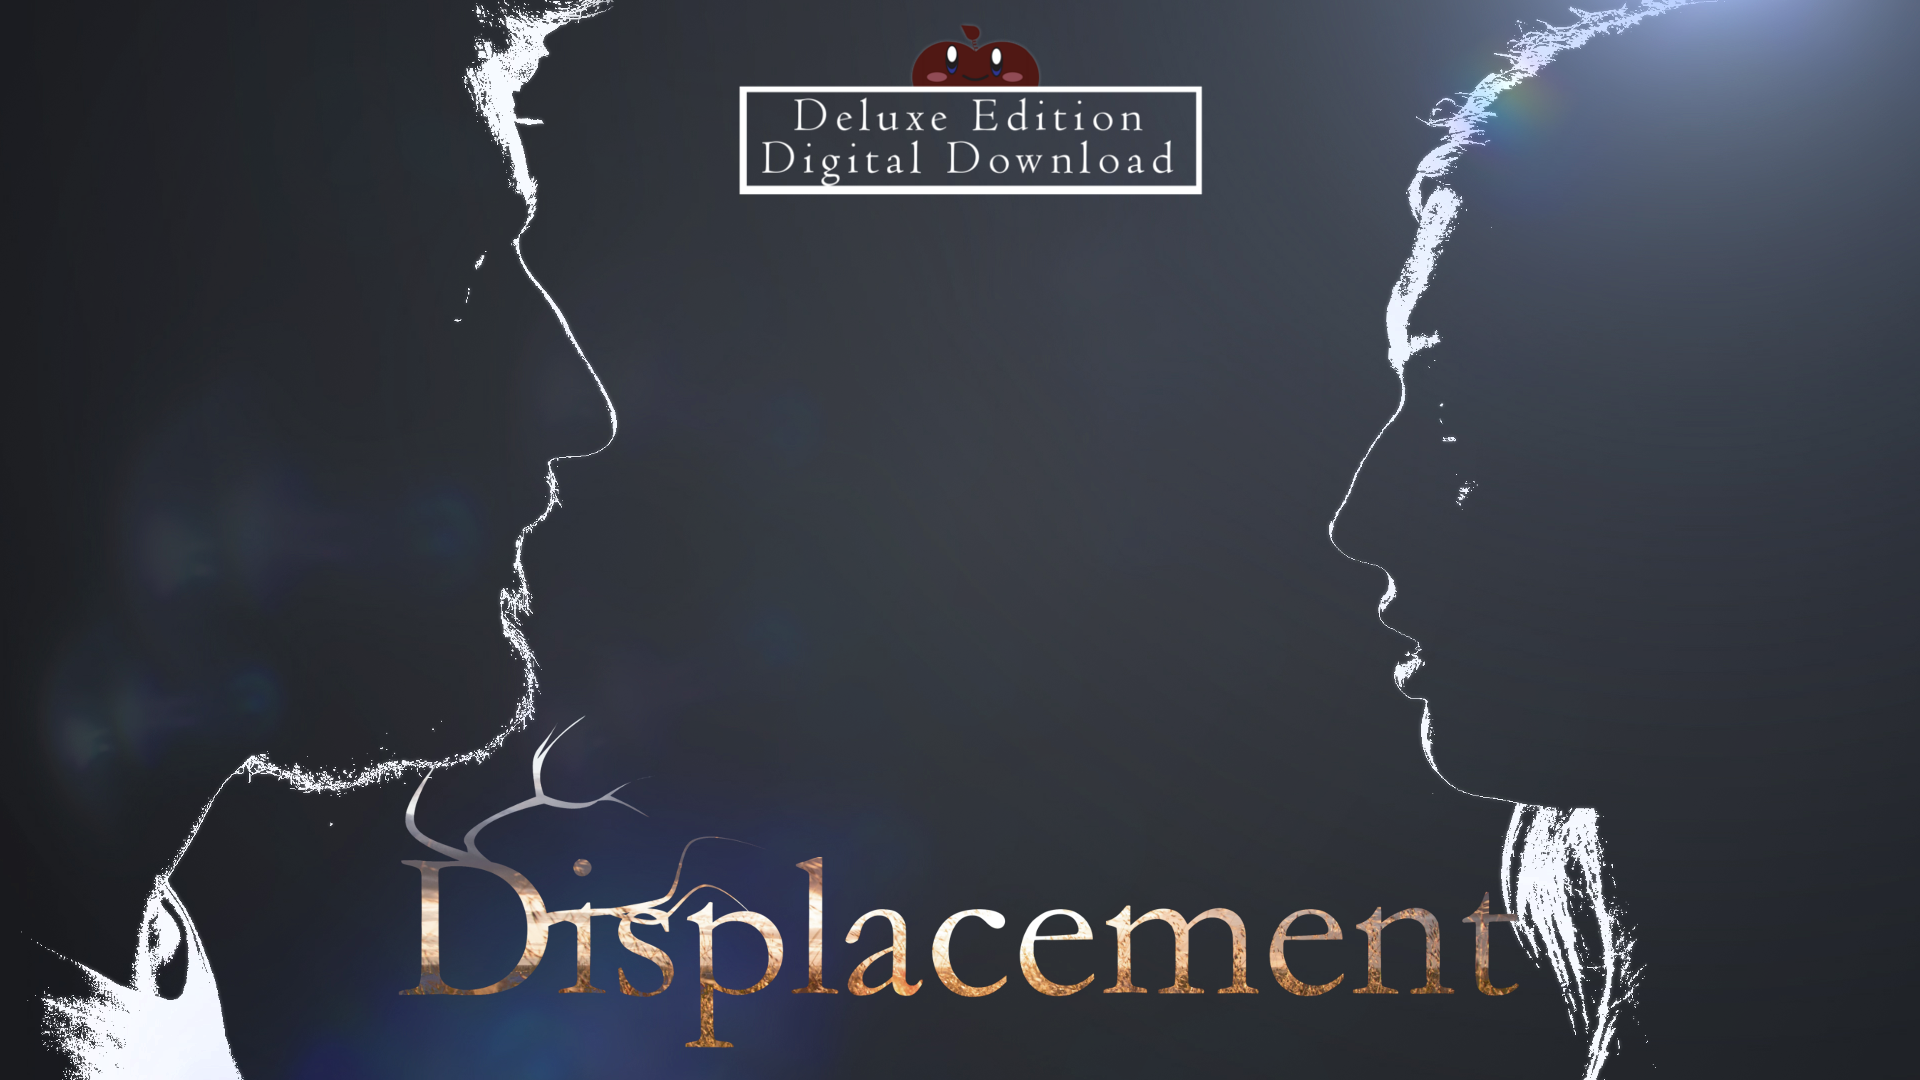 Displacement - Deluxe Edition Digital Download